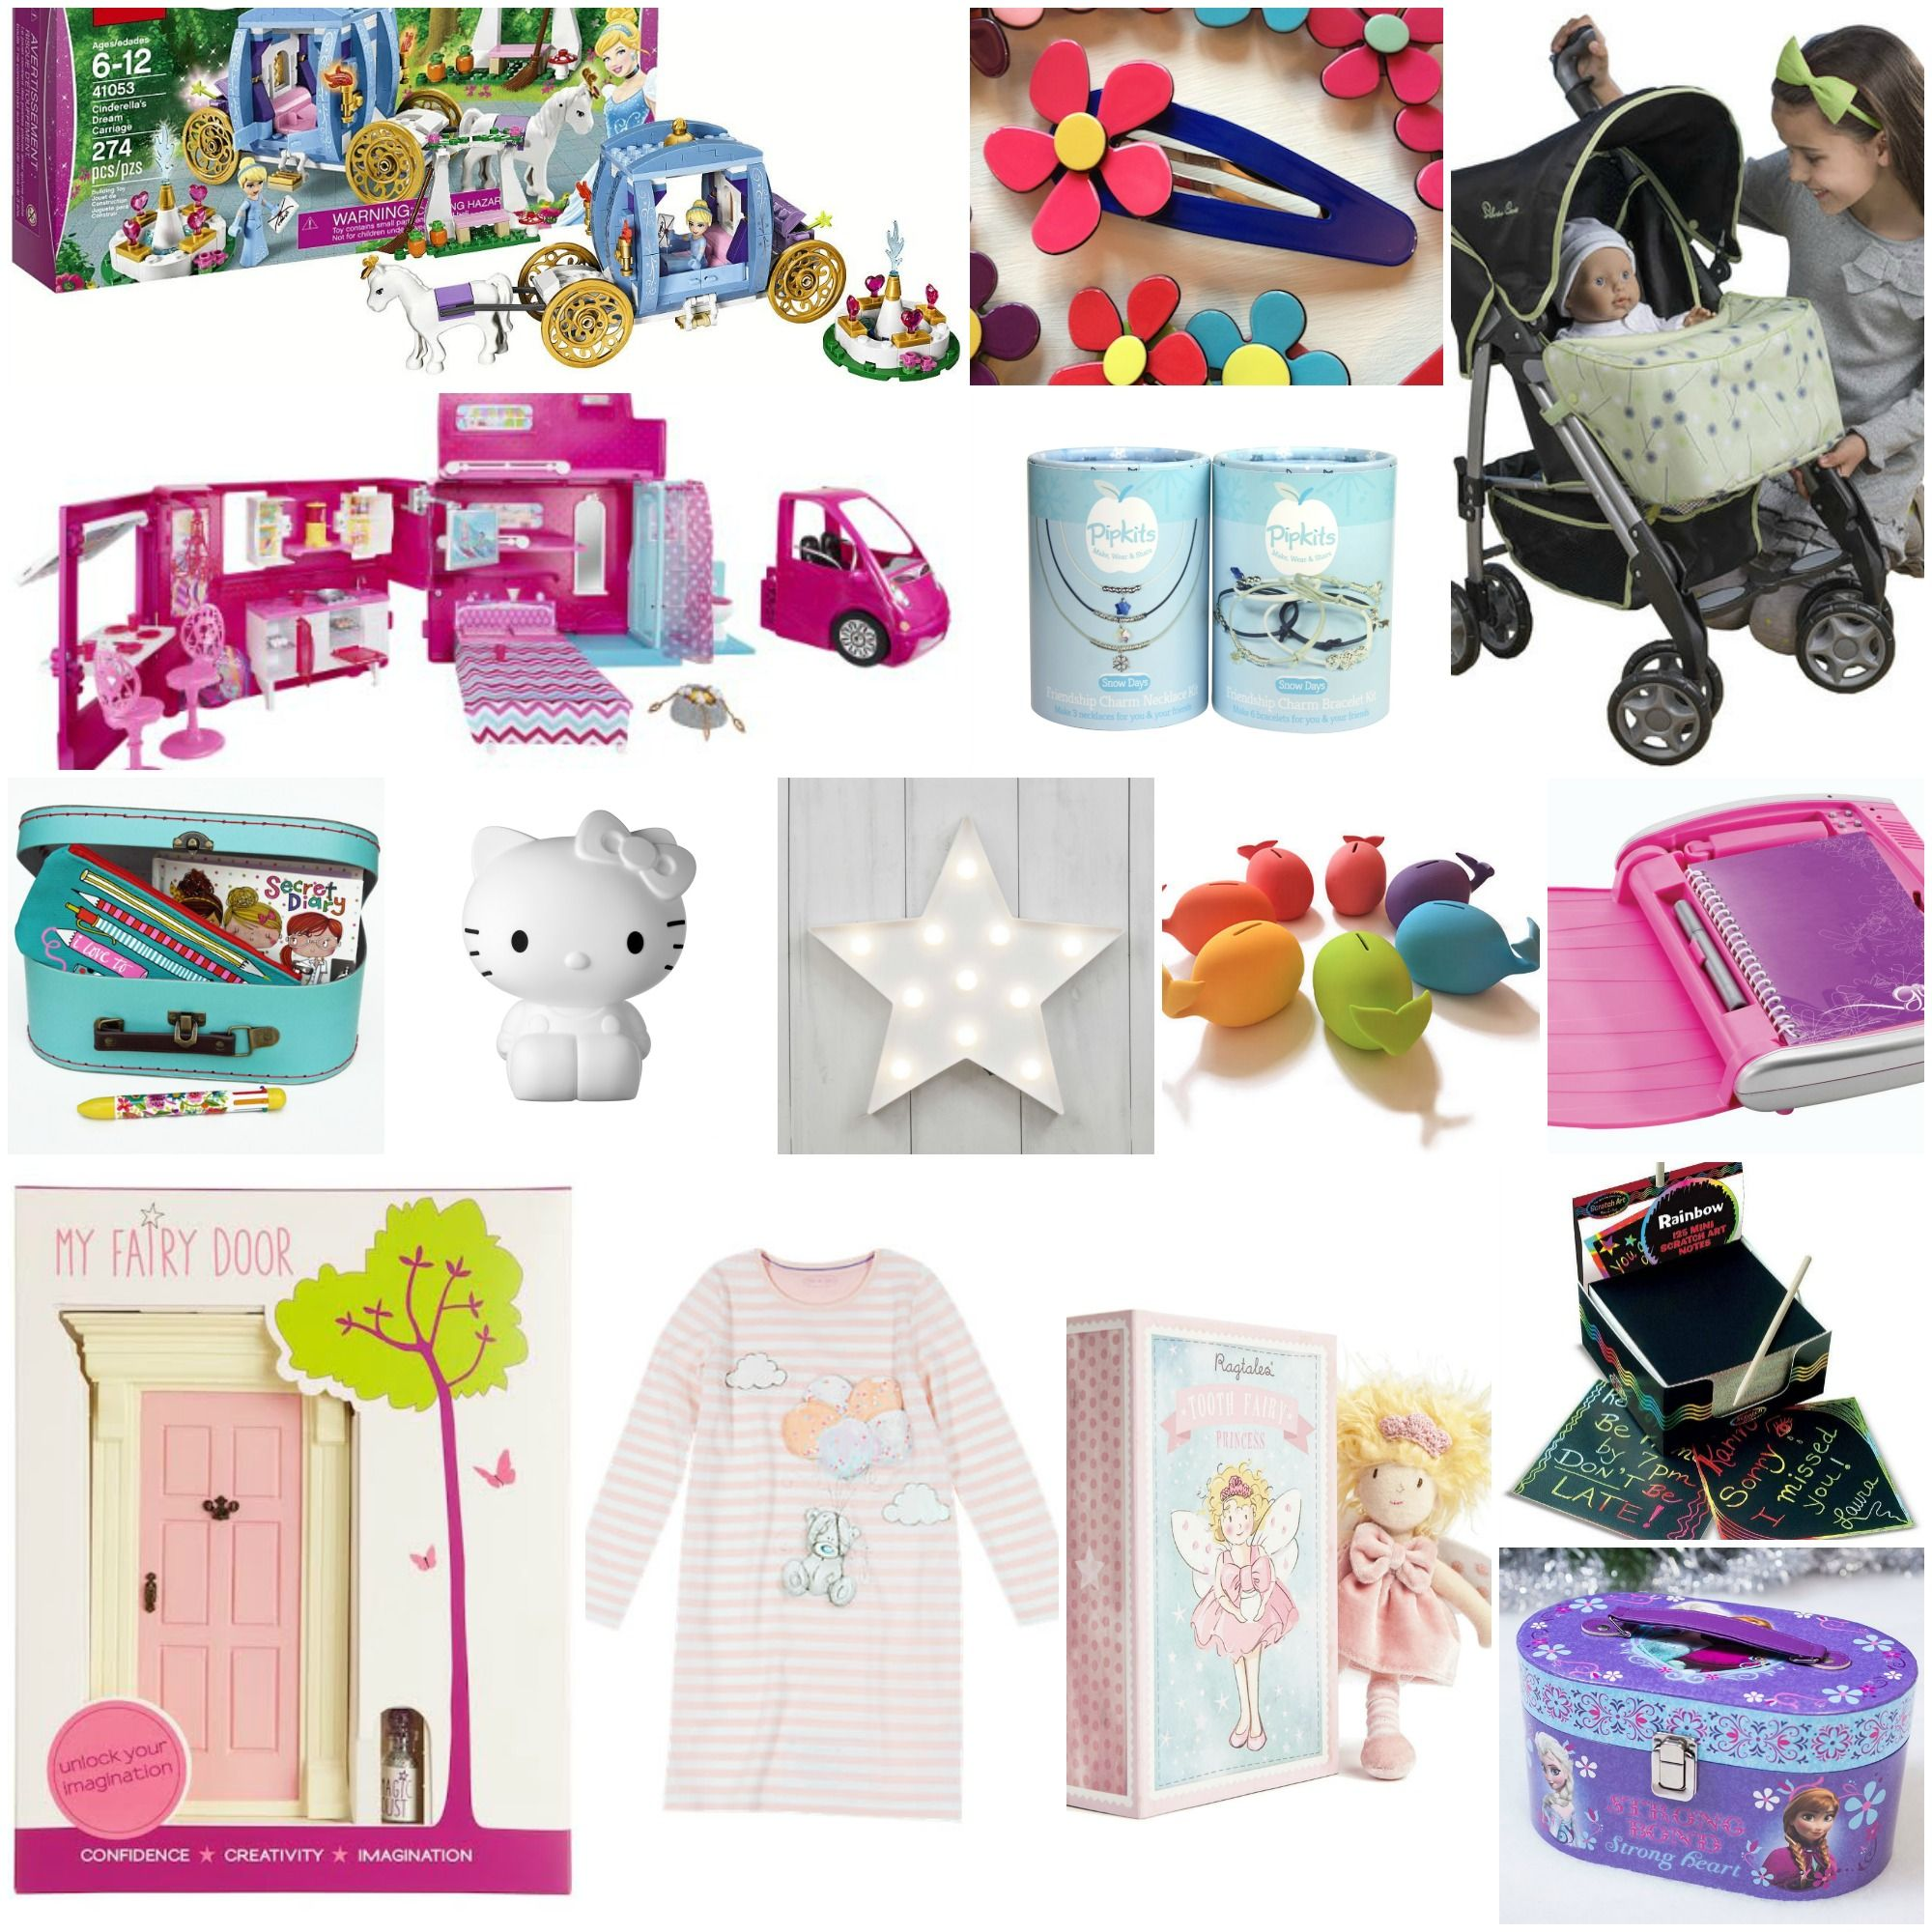 Gifts For Girls Age 6 Gifts for girls, Gifts, Girl gifts